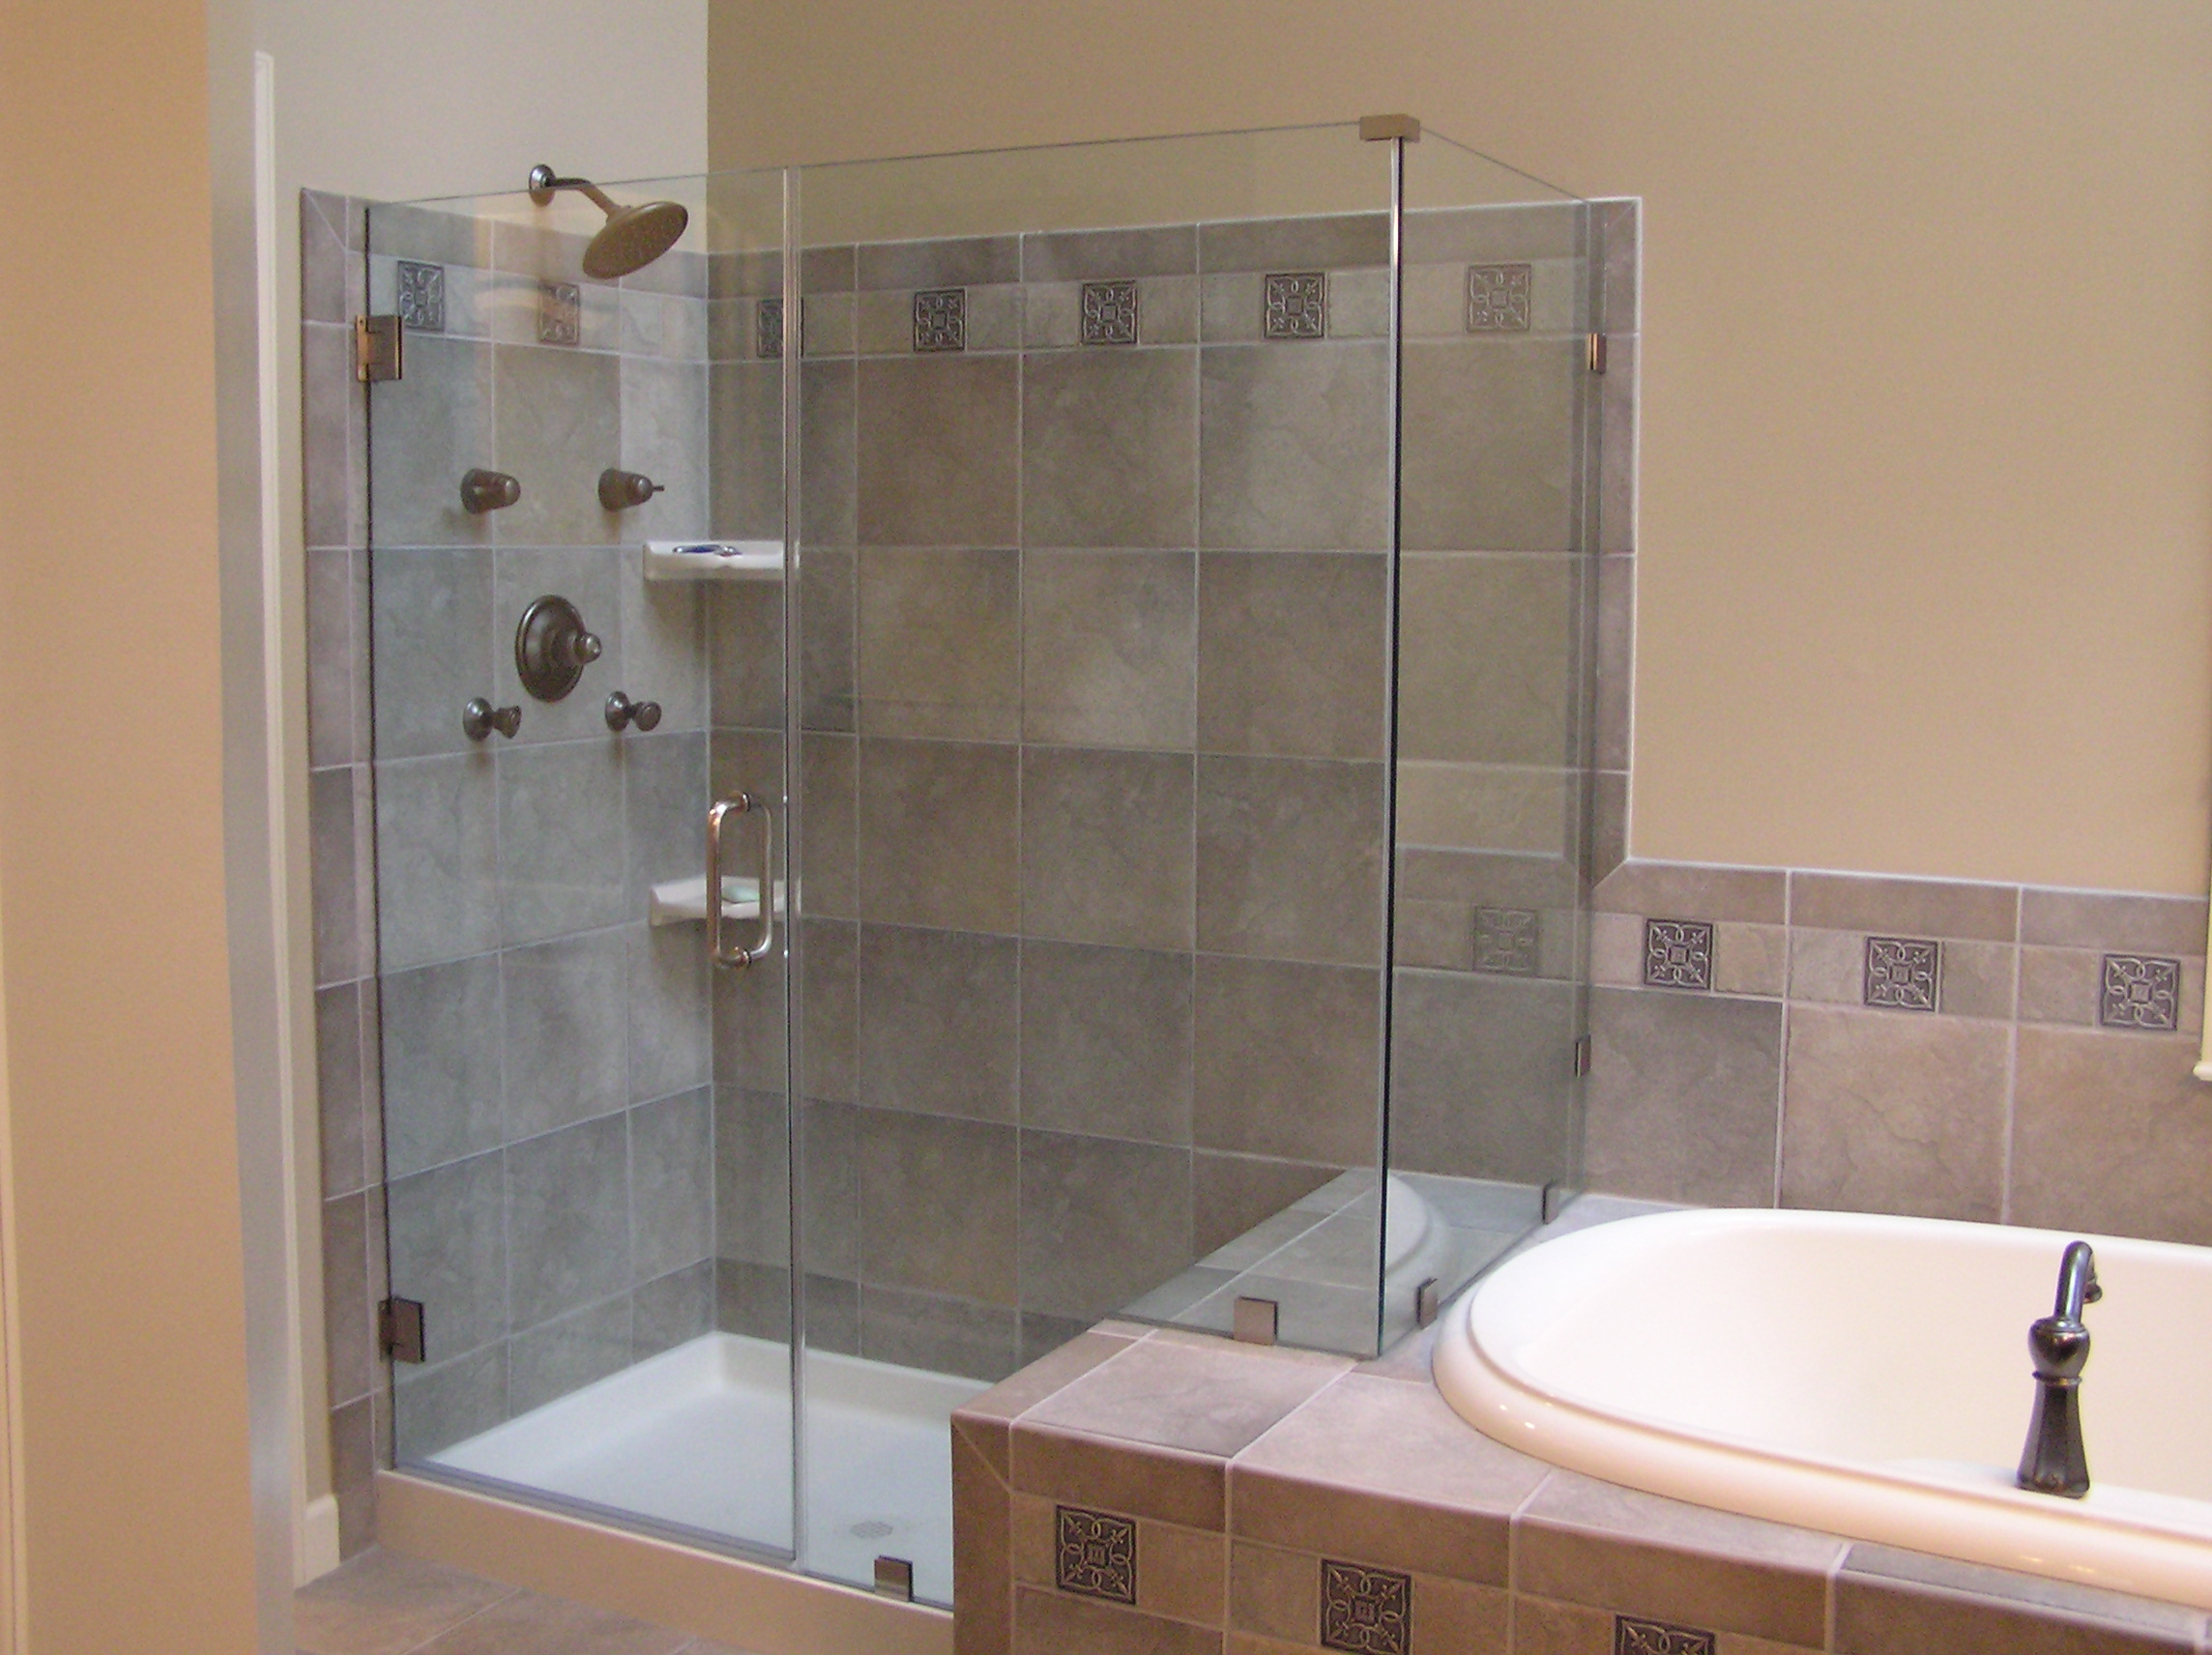 Bathroom remodeling cost Photo - 1